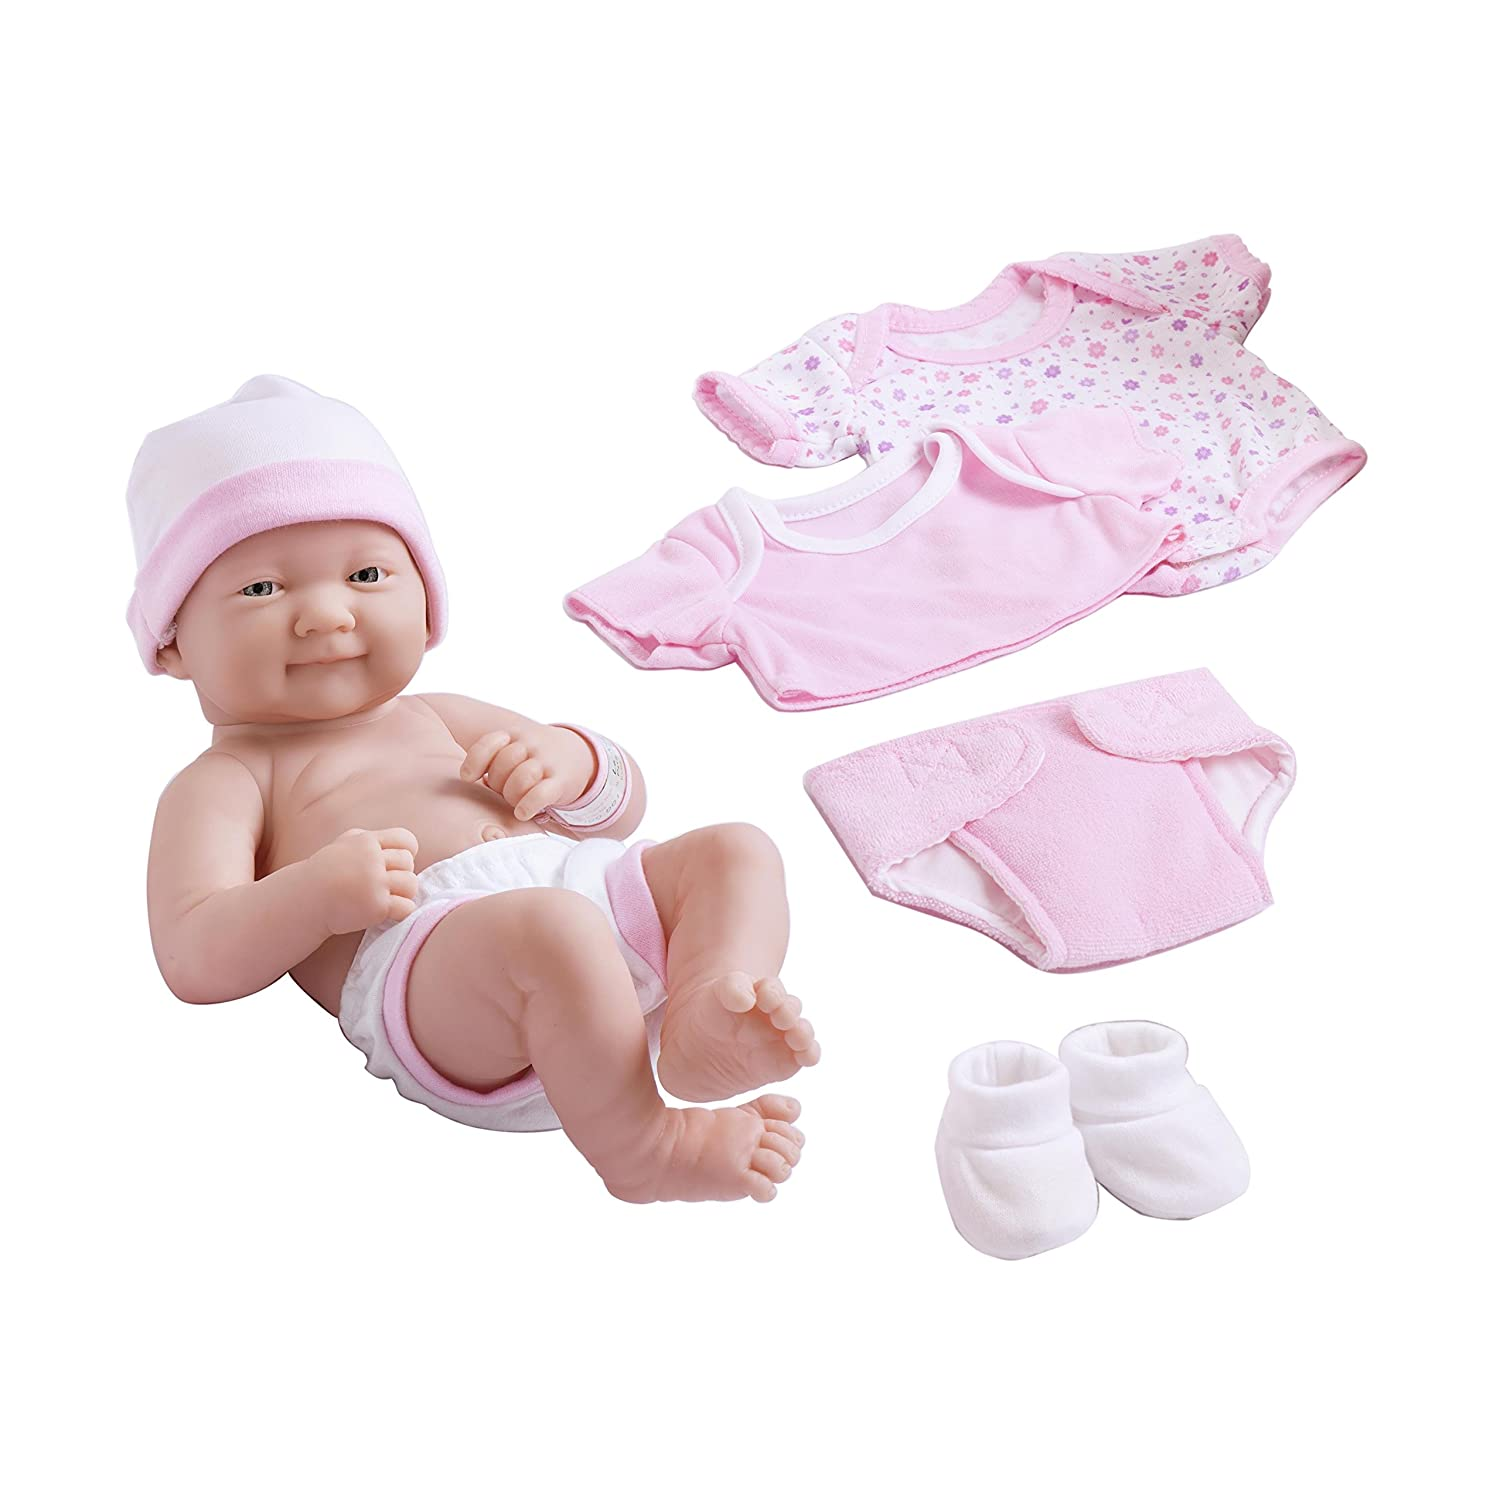 JC Berenguer Dolls La Newborn with 8-Piece Gift Set